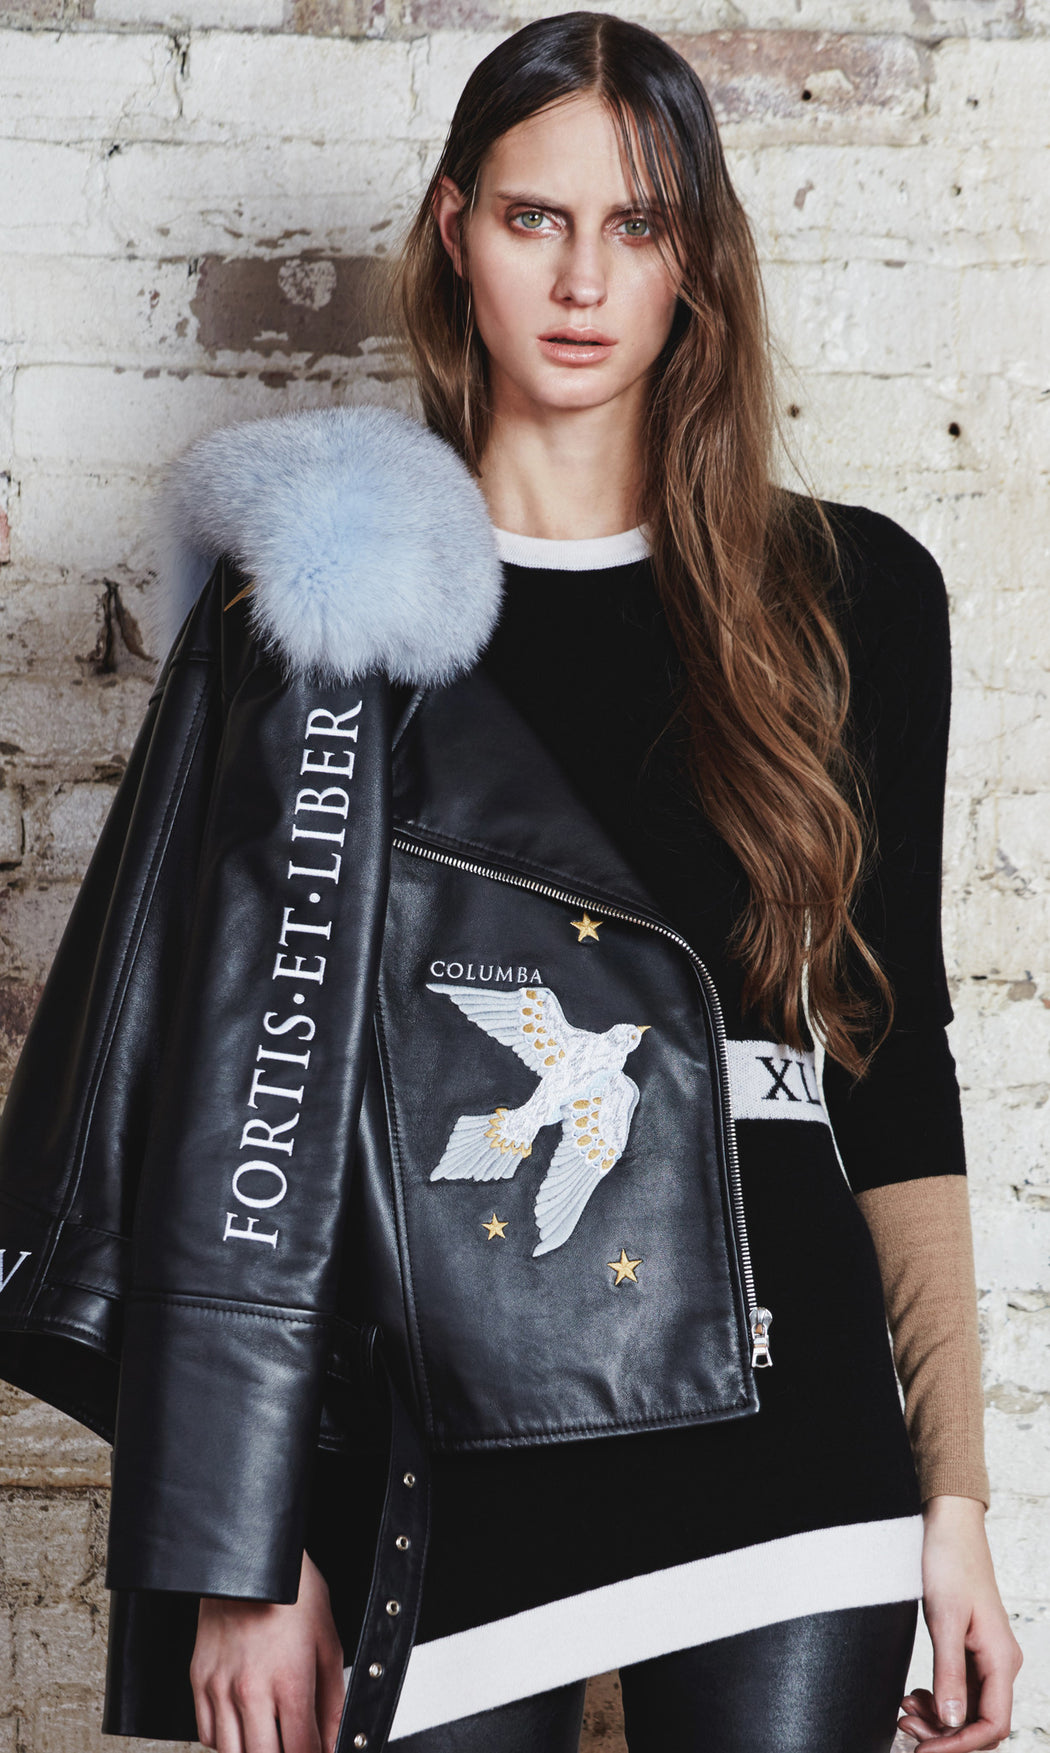 'FORTIS ET LIBER' Biker Jacket With Fur Collar